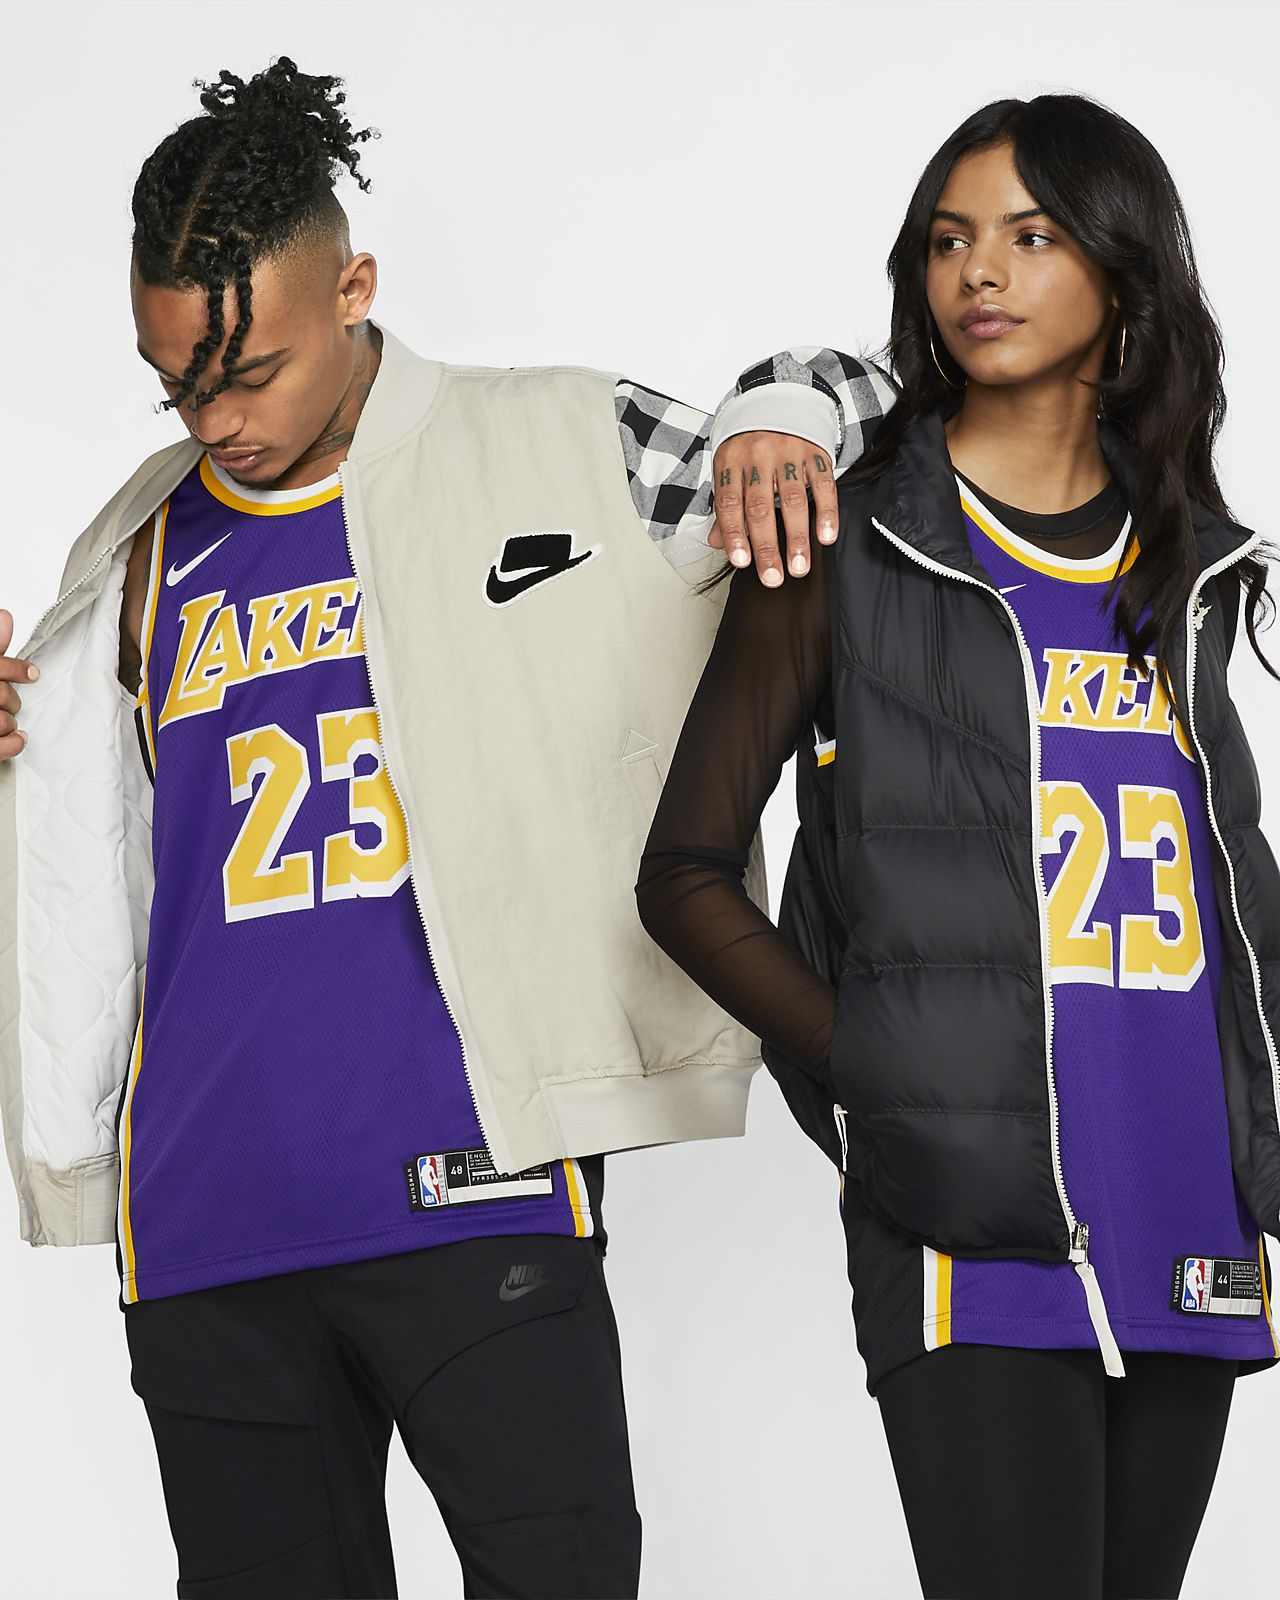 8a670603a3e9 Men s Nike NBA Connected Jersey. LeBron James Statement Edition Swingman (Los  Angeles Lakers)